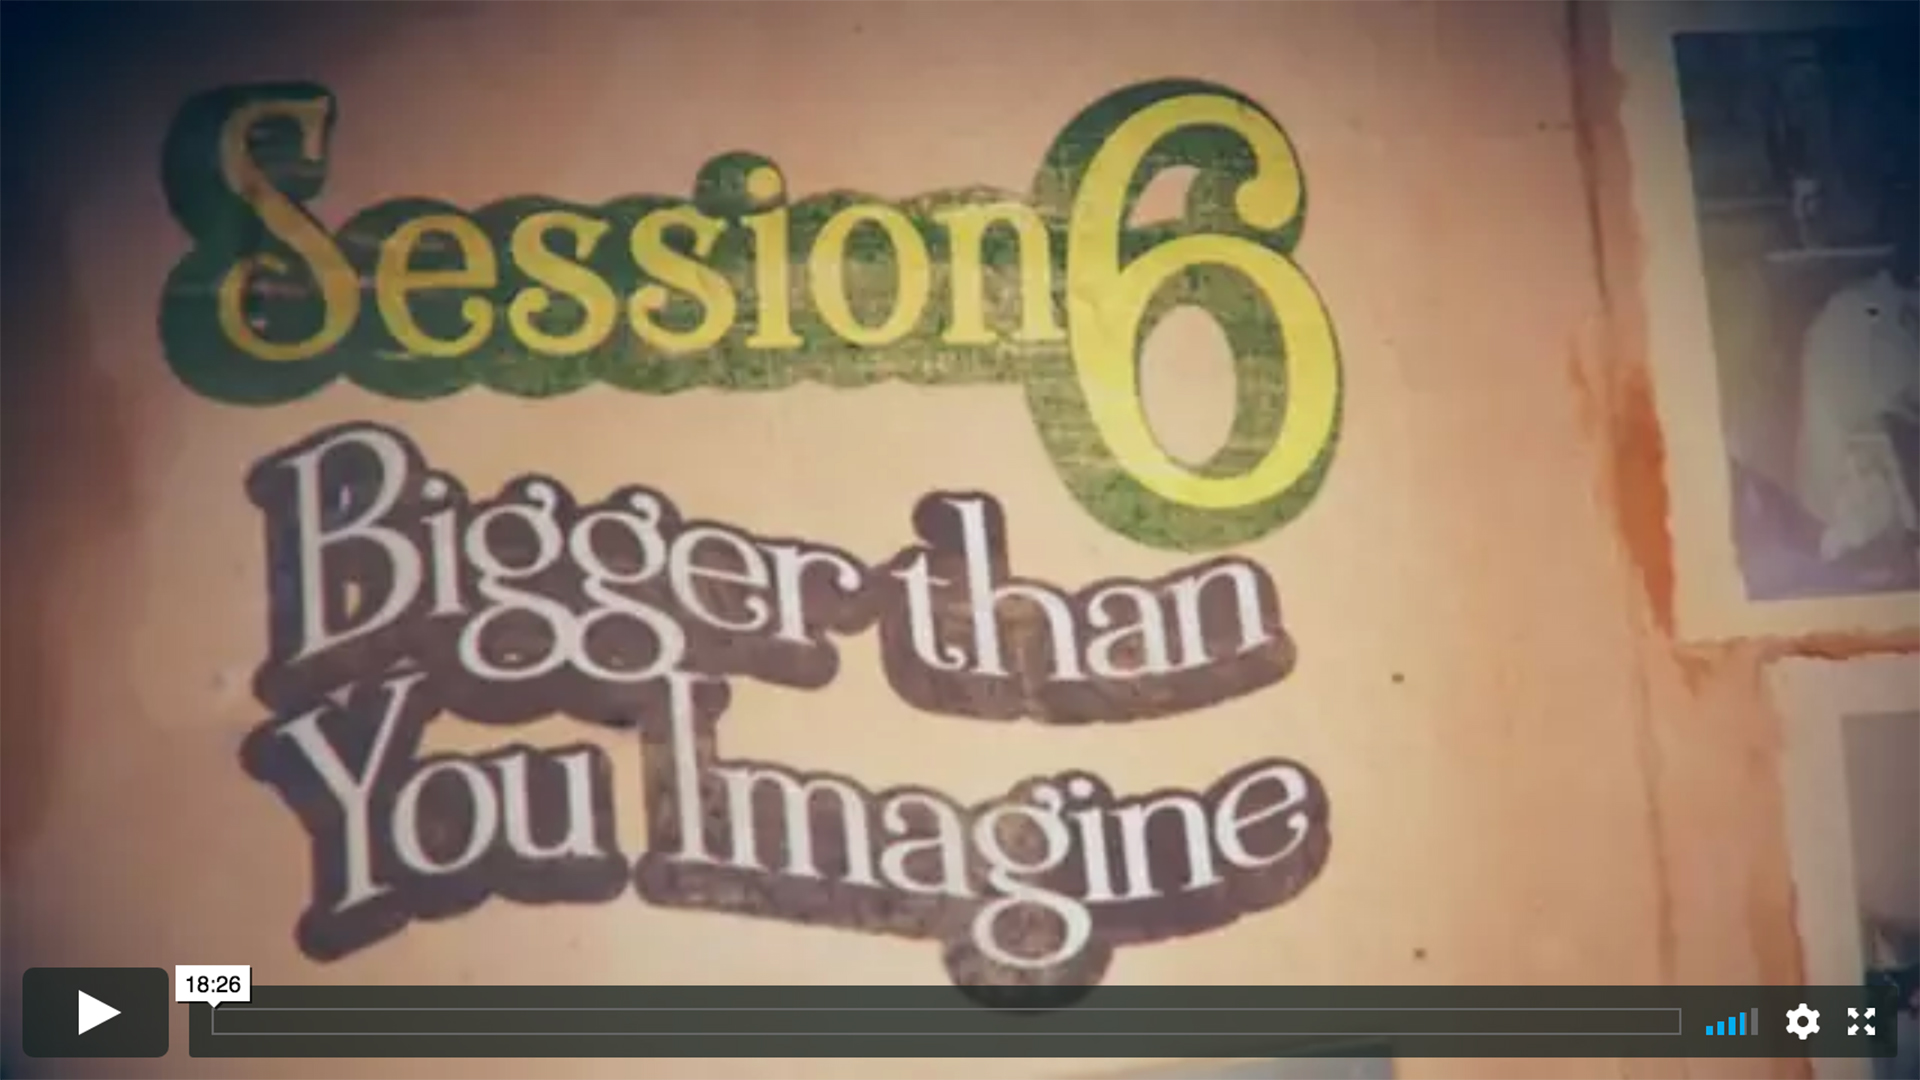 Session 6 - Bigger Than You Imagine